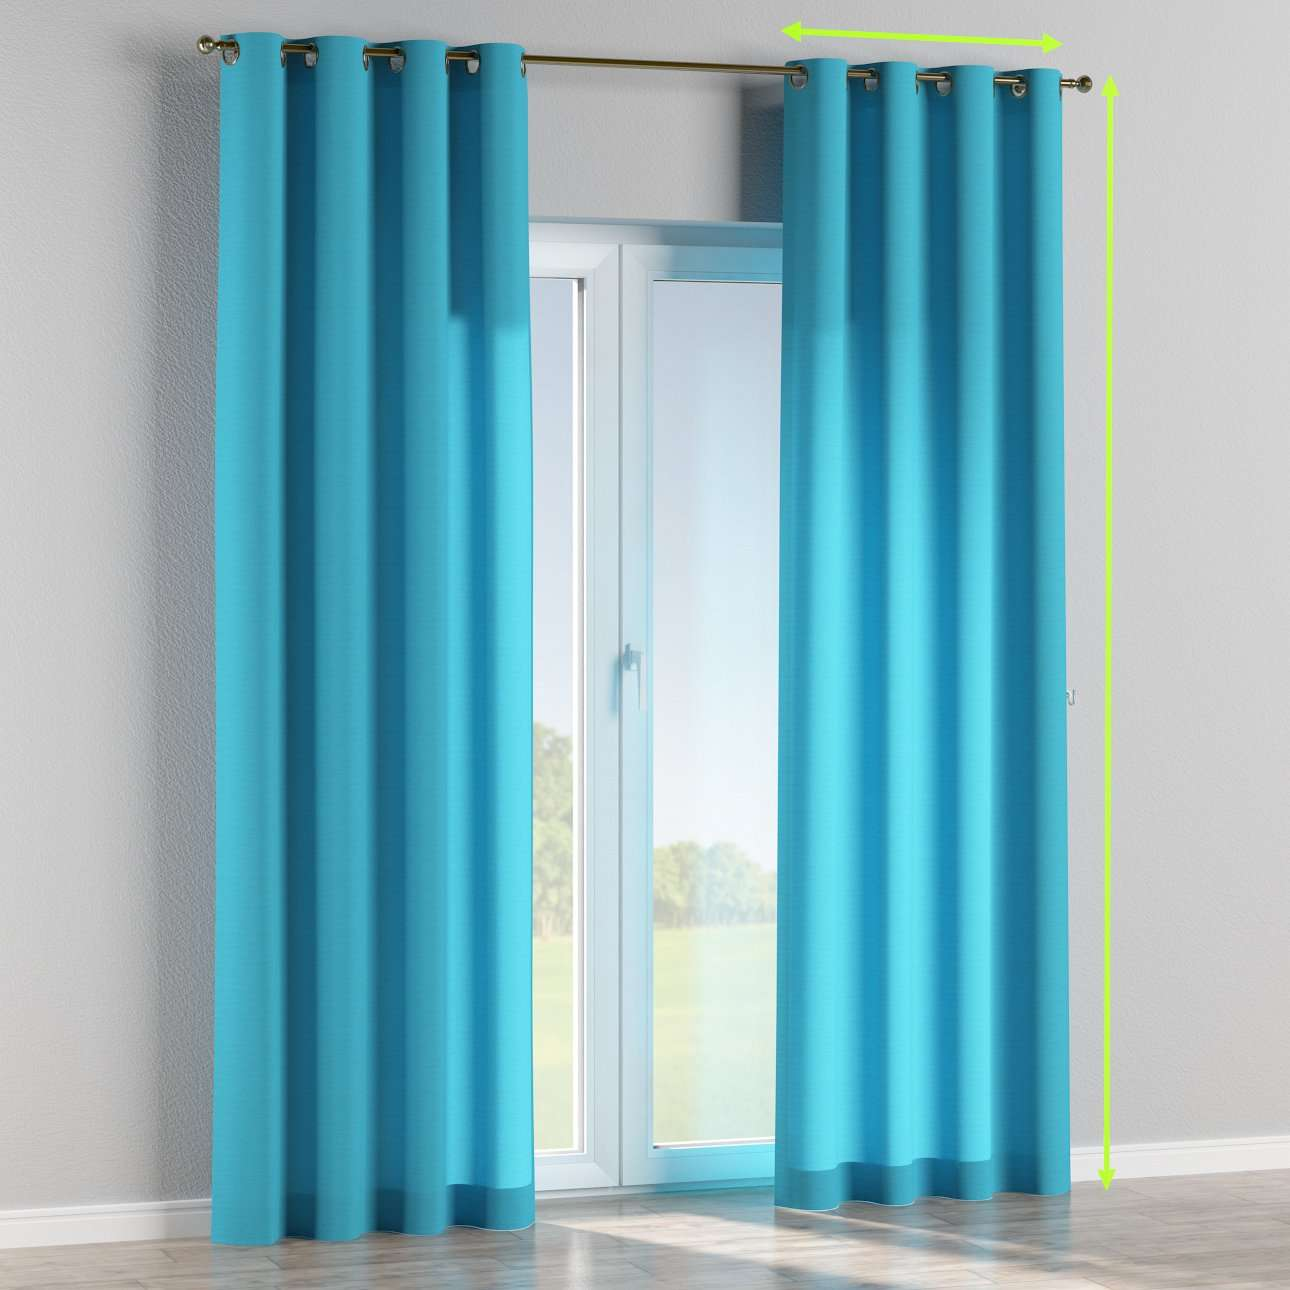 Eyelet curtain in collection Jupiter, fabric: 127-70